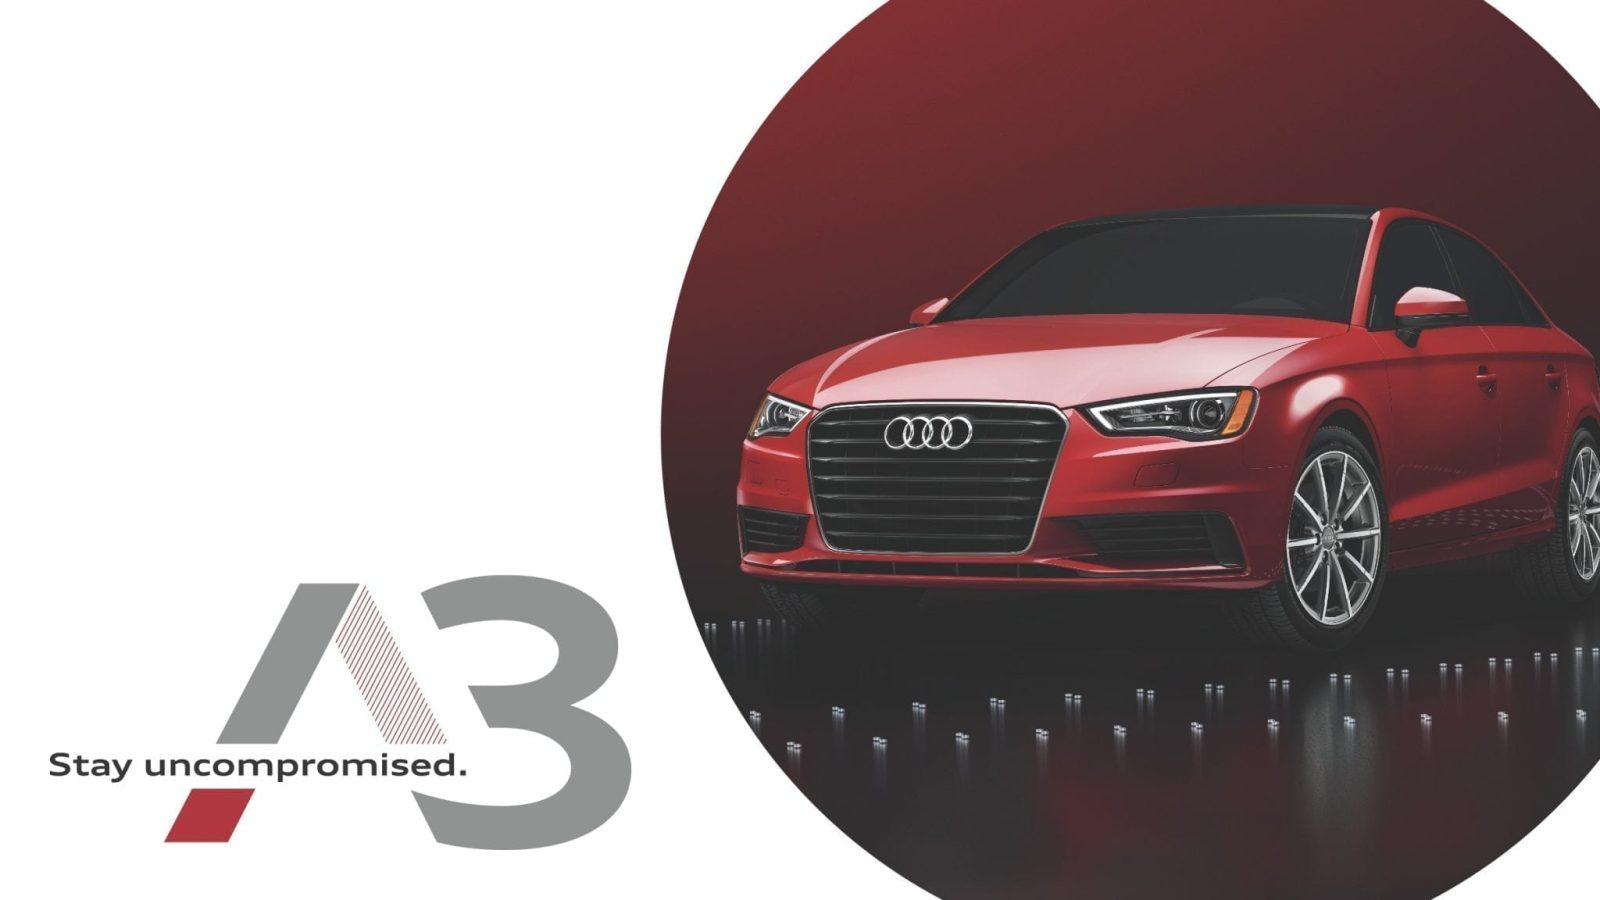 Audi Meadowlands Hosts A3 Launch Party With Dj Ruckus At